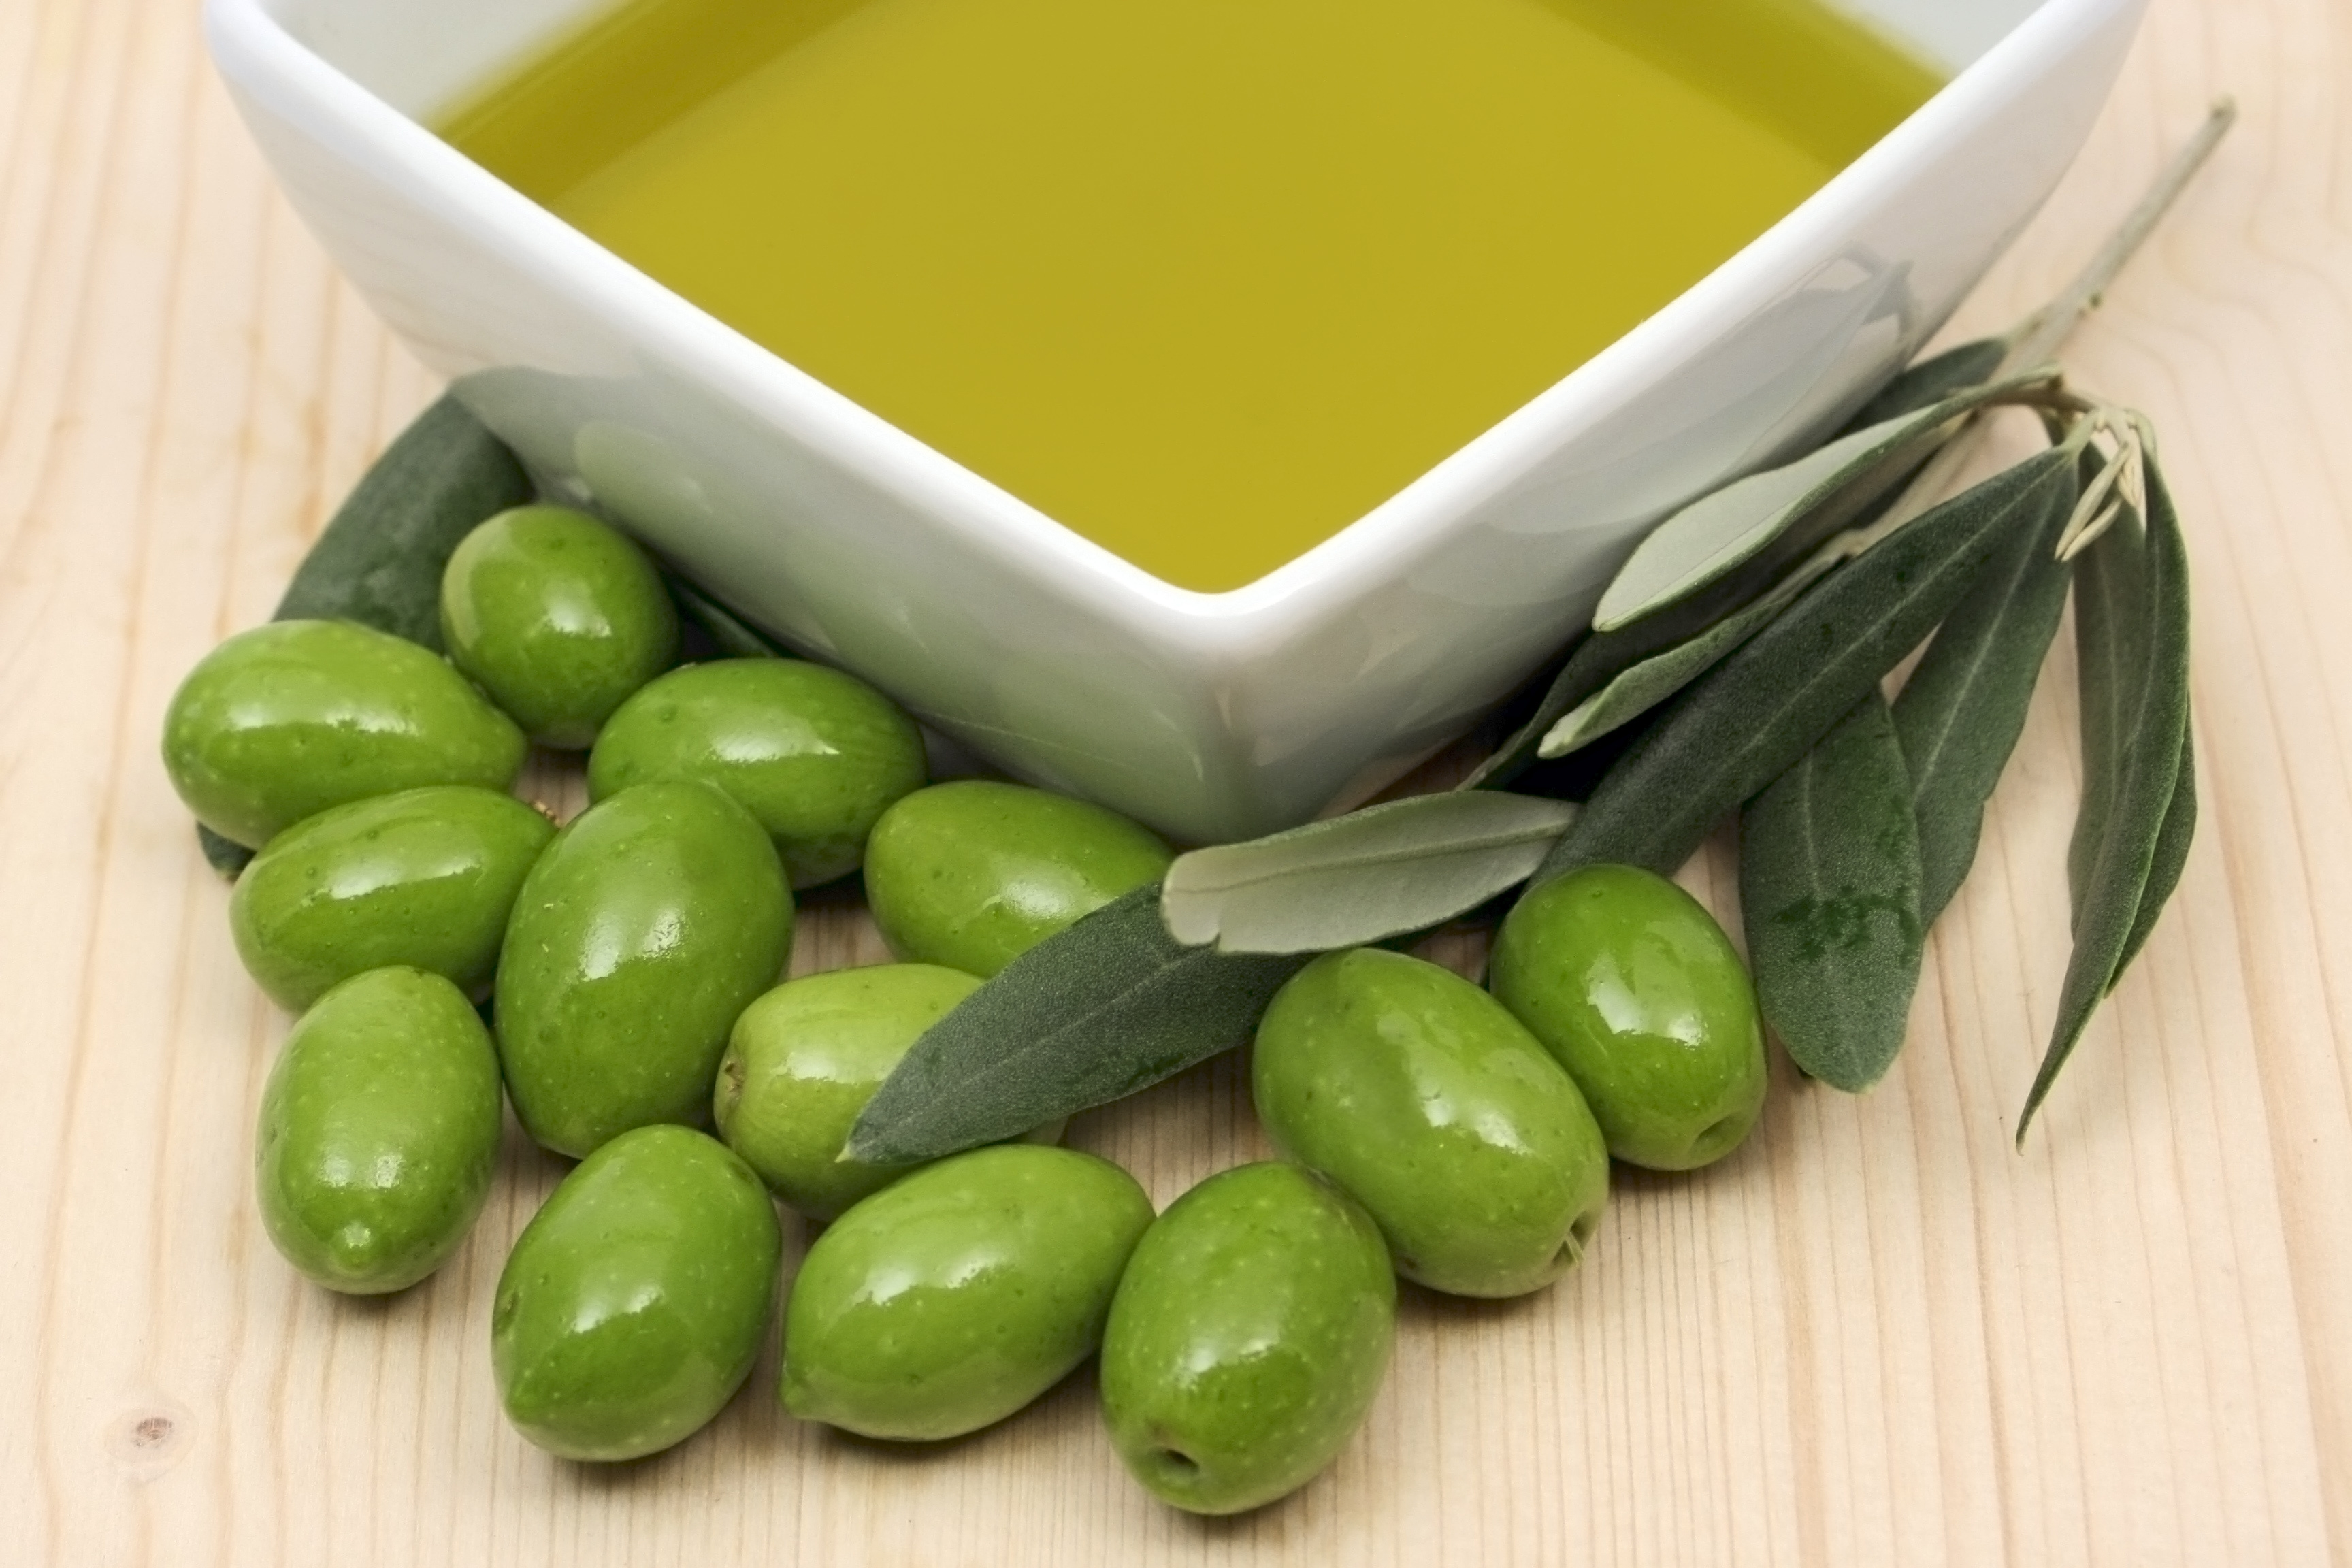 Is Crystal City Olive Oil the Real Deal?